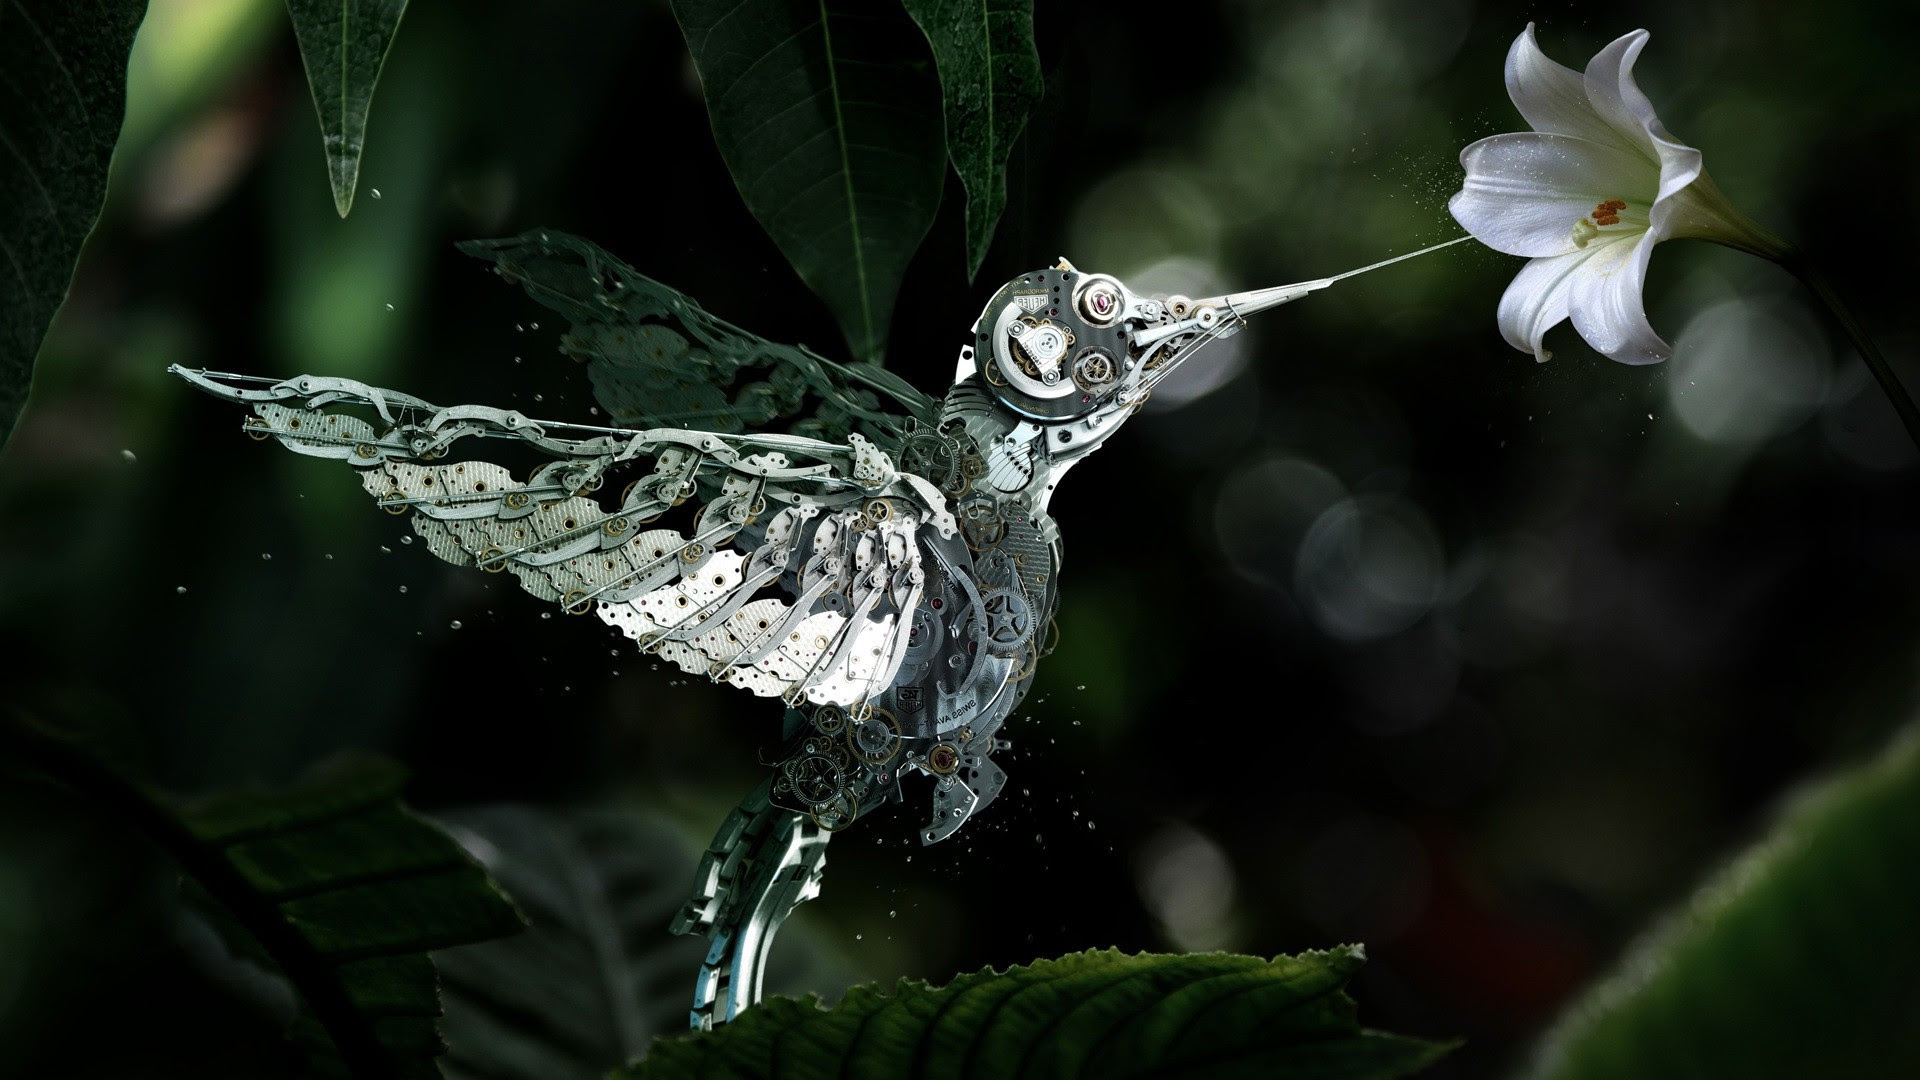 animals, Digital Art, Flowers, Hummingbirds, Machine, Birds Wallpapers HD / Desktop and Mobile